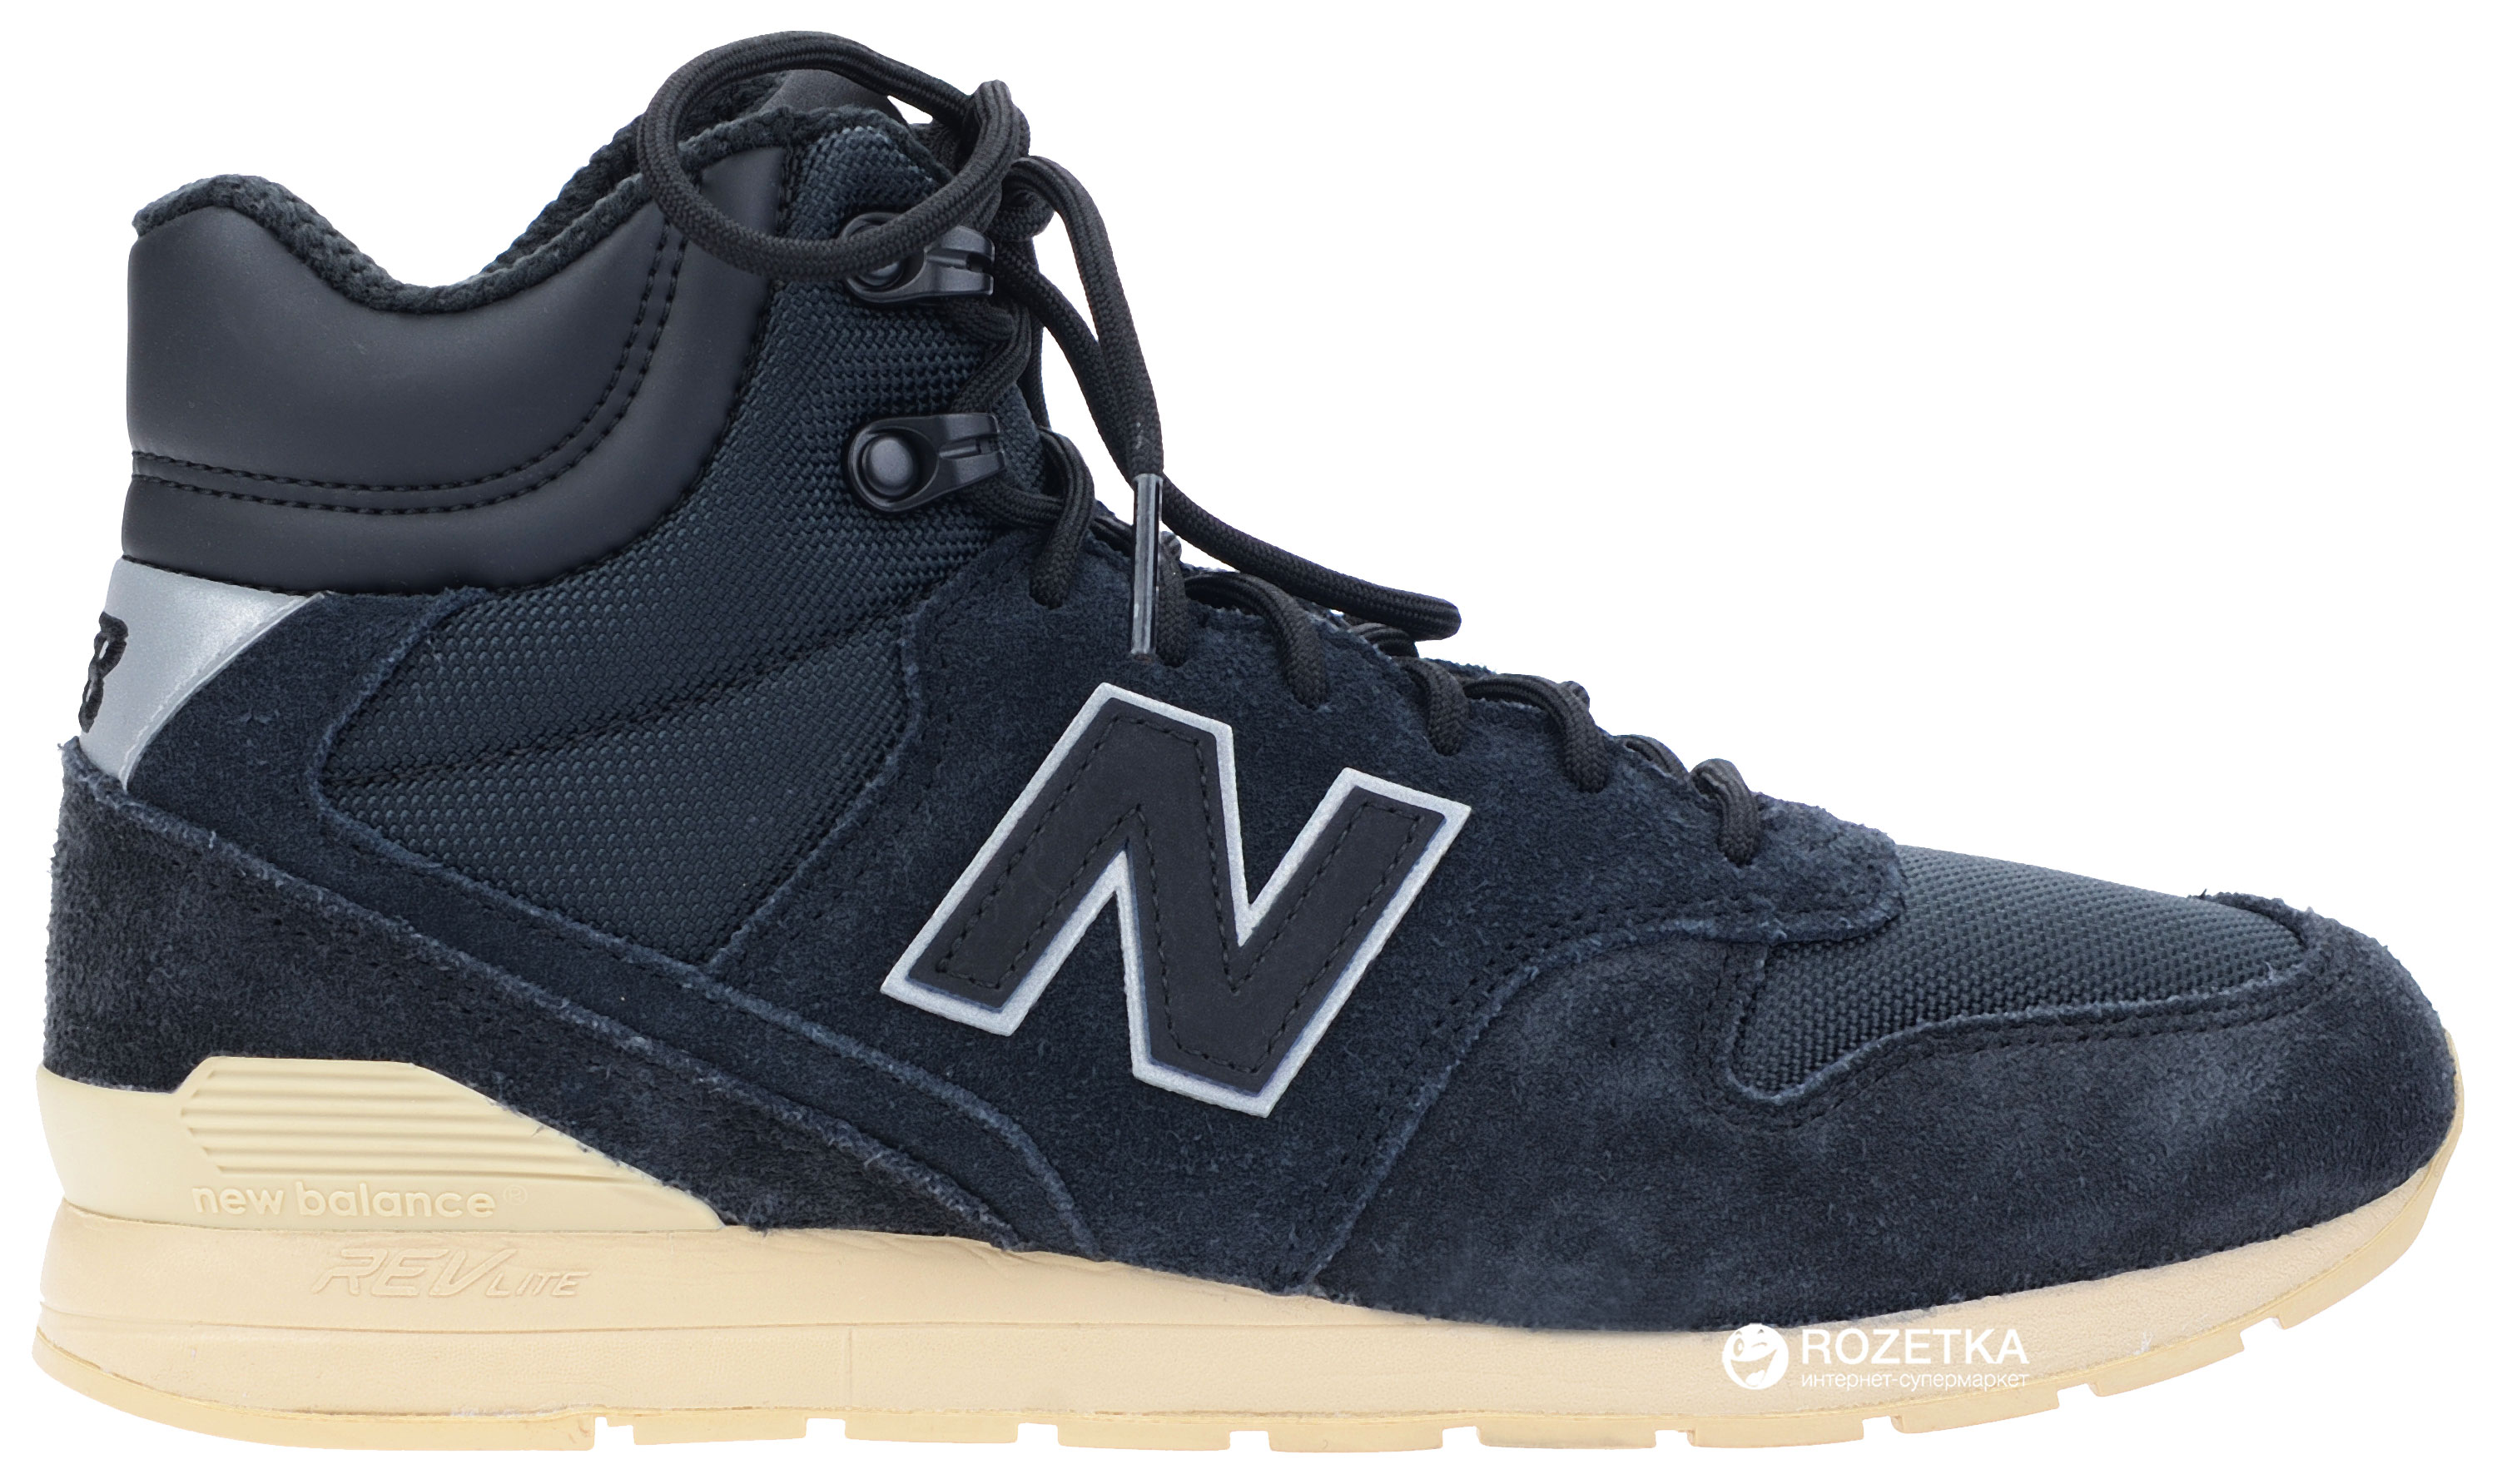 Ботинки New Balance 996 High MRH996BT 39 (7) 25 см (889516211427) 97d65219cde32